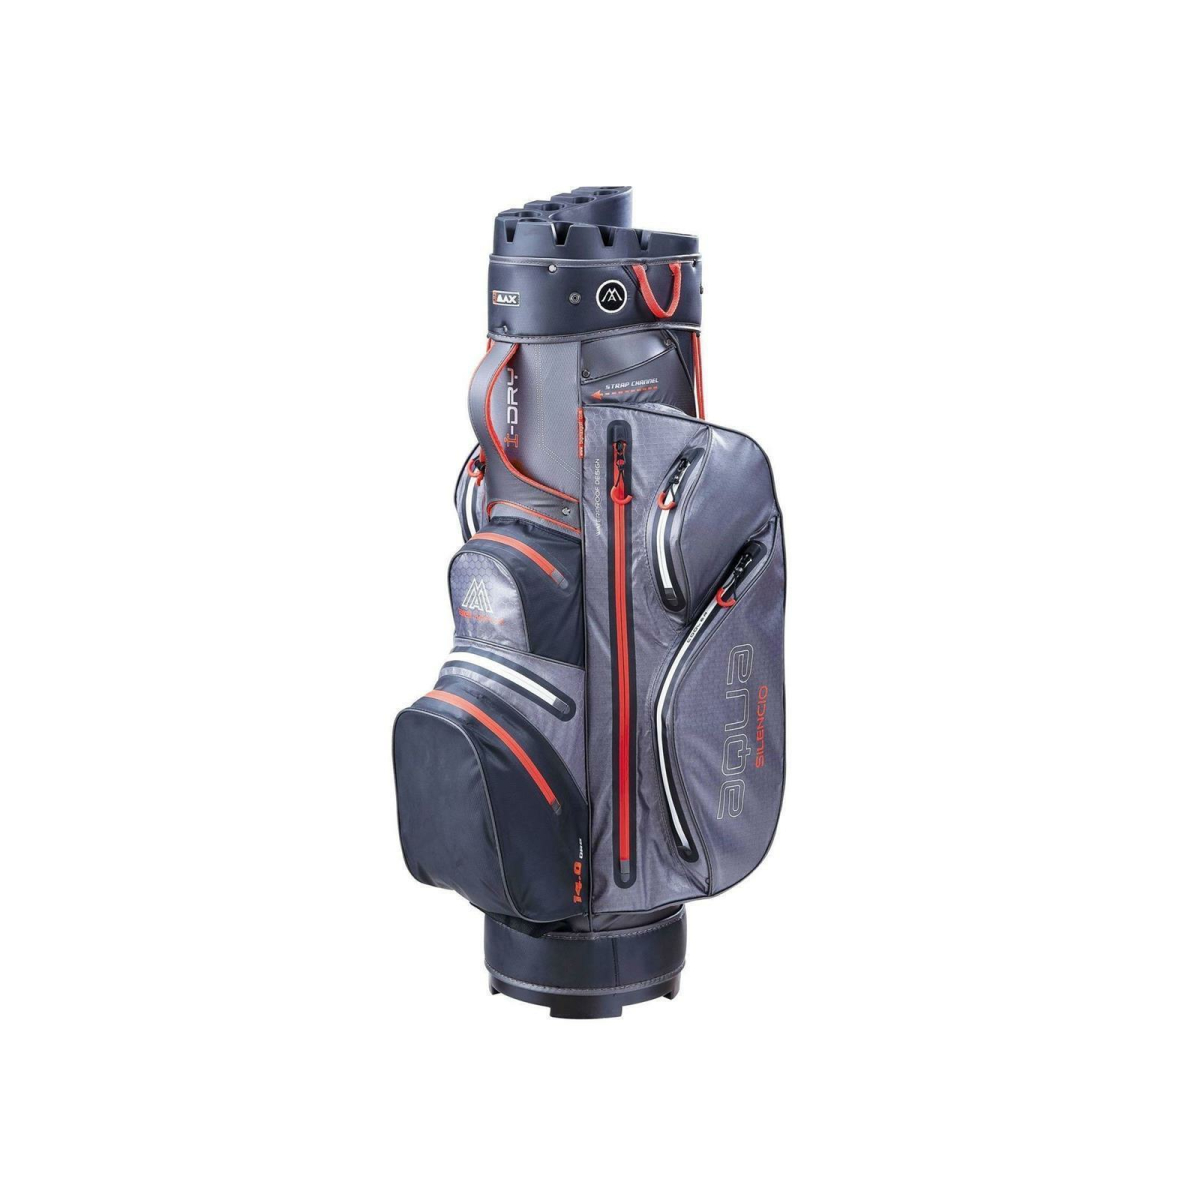 BIG MAX Cartbag Aqua Silencio 3 charcoal-black-red